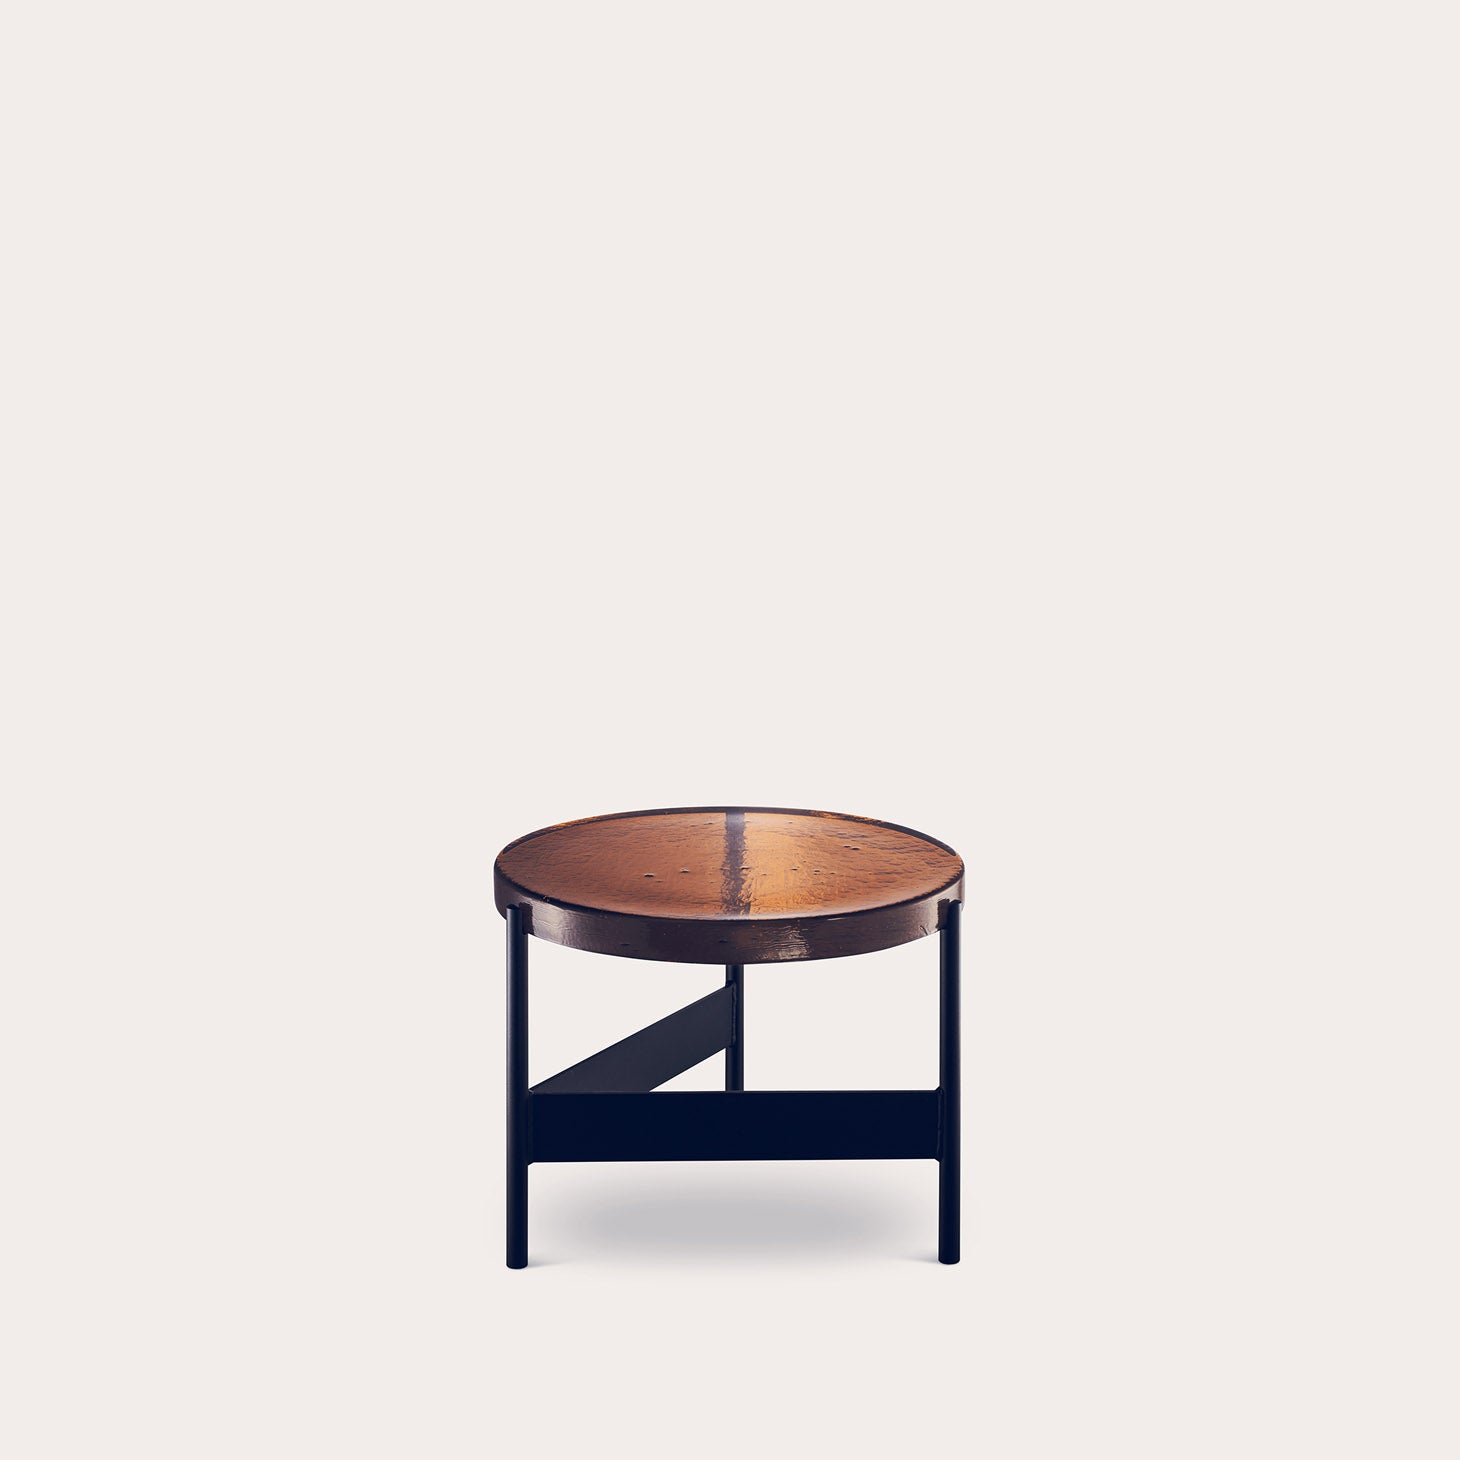 ALWA II Big Tables Sebastian Herkner Designer Furniture Sku: 747-230-10019